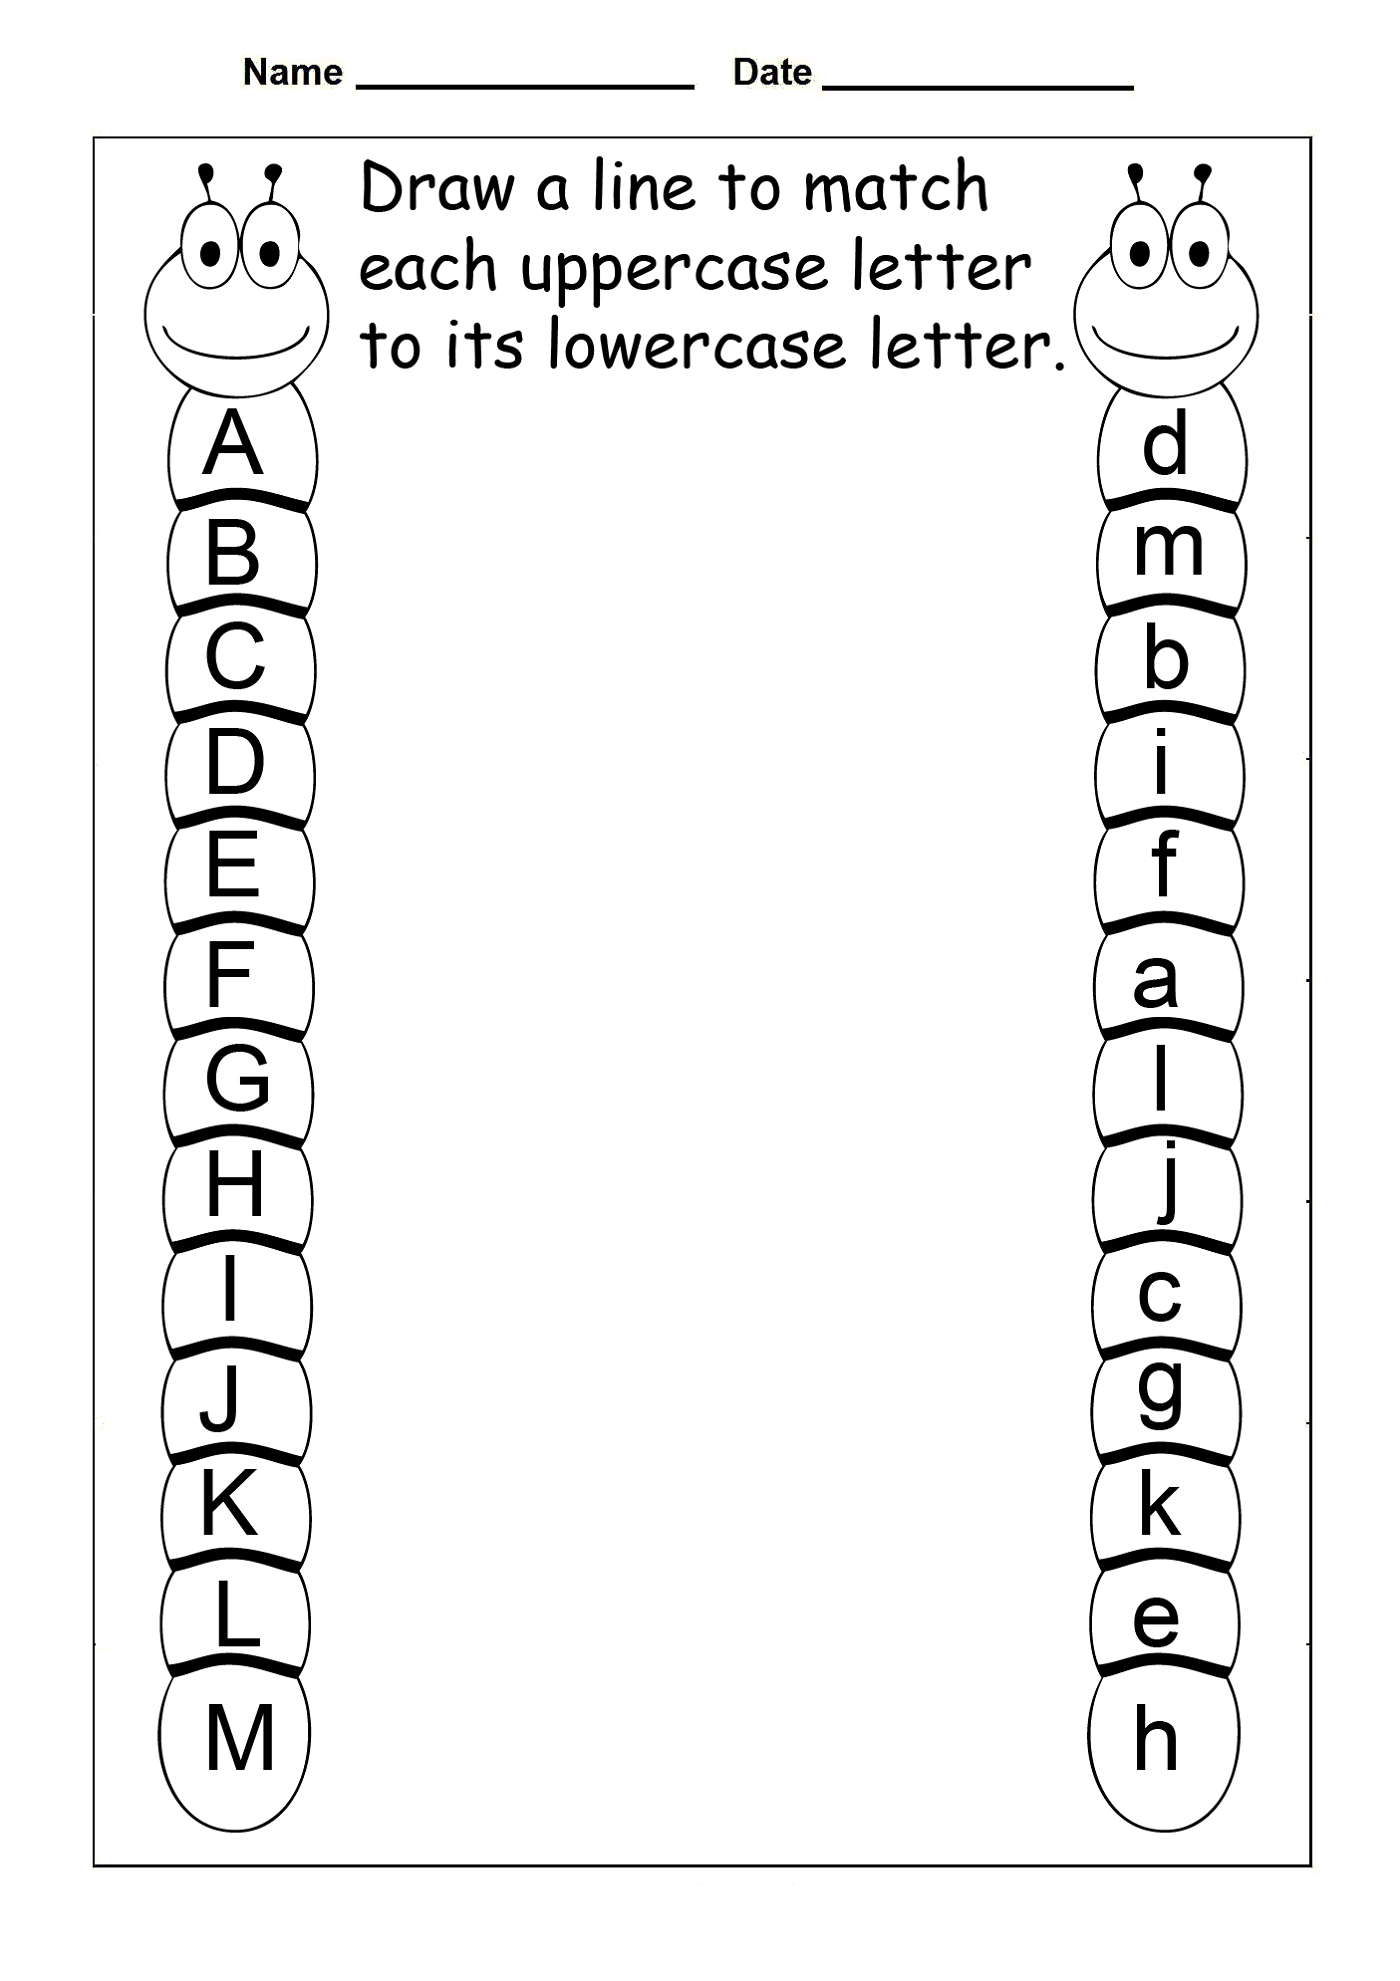 Free Abc Tracing Worksheets Letter Worksheets In 2020 Alphabet Tracing Worksheets Tracing Worksheets Free Letter Tracing Worksheets [ 1024 x 791 Pixel ]